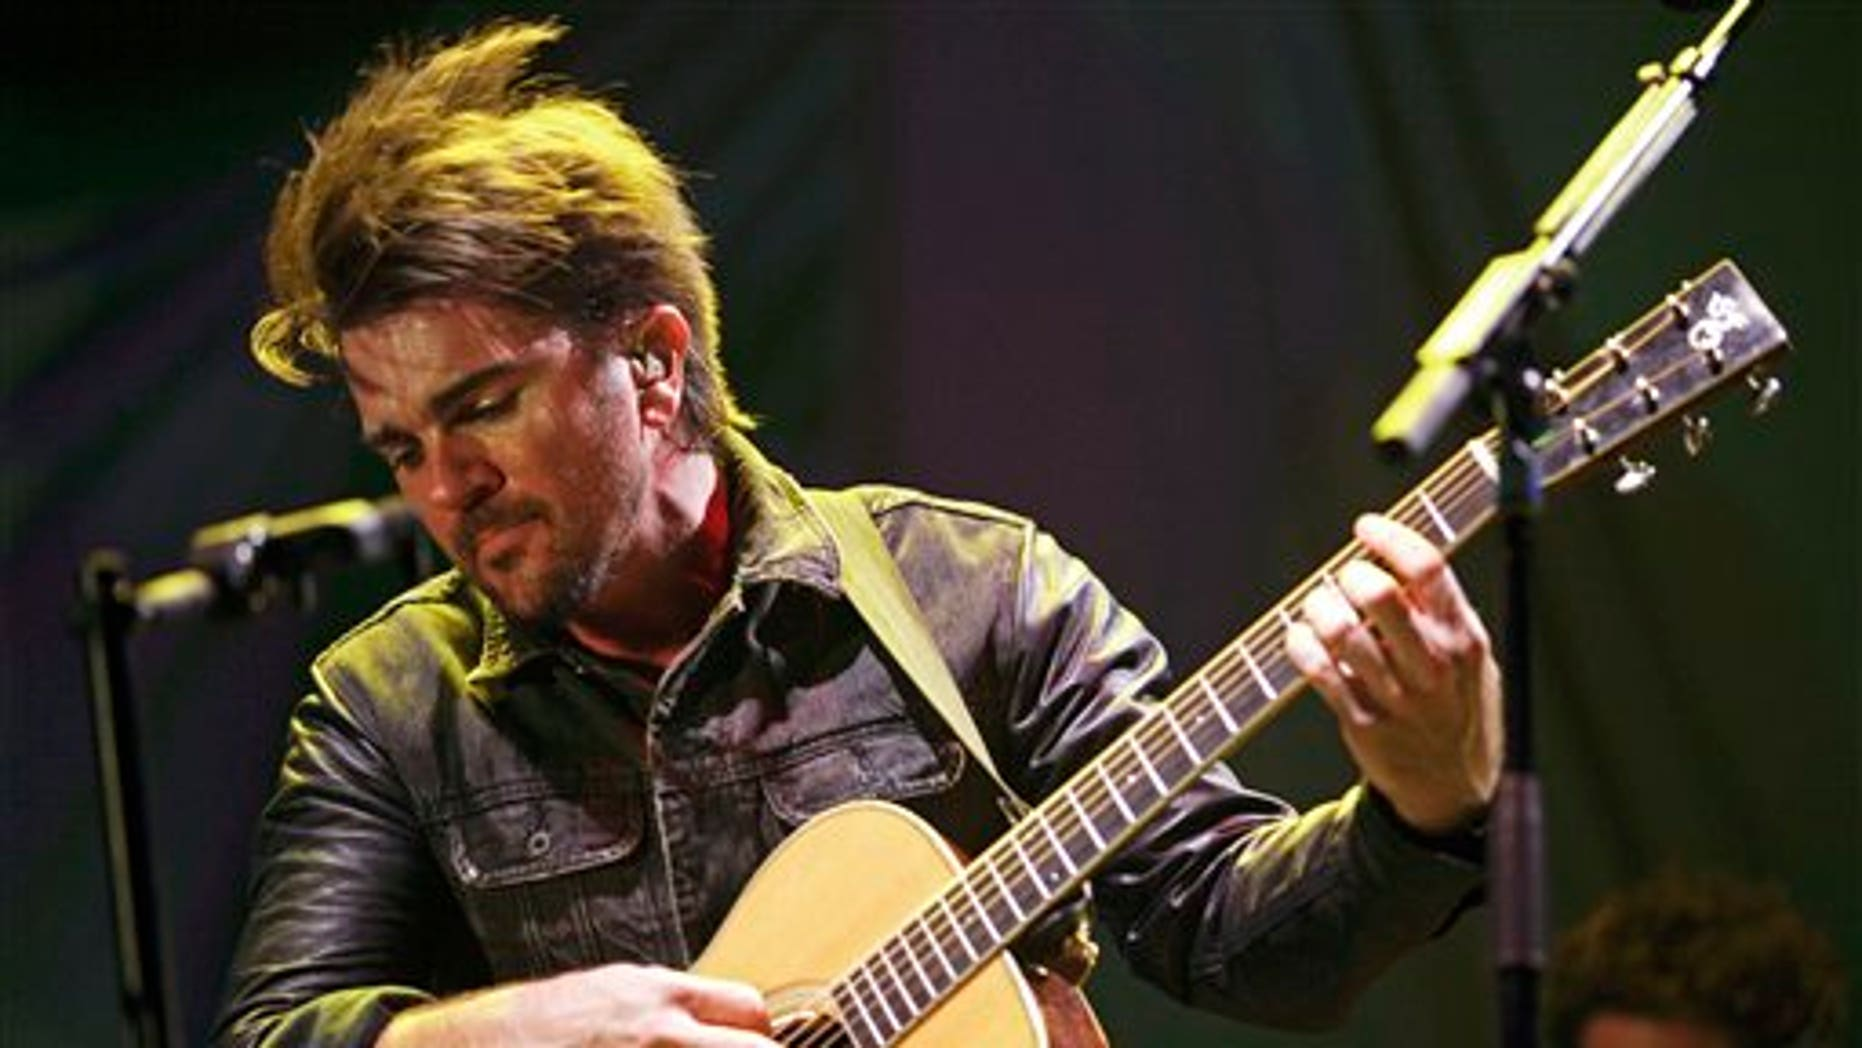 FILE - In this April 18, 2013 file photo, Colombian singer Juanes performs in a concert as a part of his Unplugged tour in Panama City. Juanes will launch his album Loco de Amor, on March 11, 2014. The singer said that the album recorded in live studio sessions at a studio and produced by Steve Lillywhite, is his best work to date. (AP Photo/Arnulfo Franco, File)